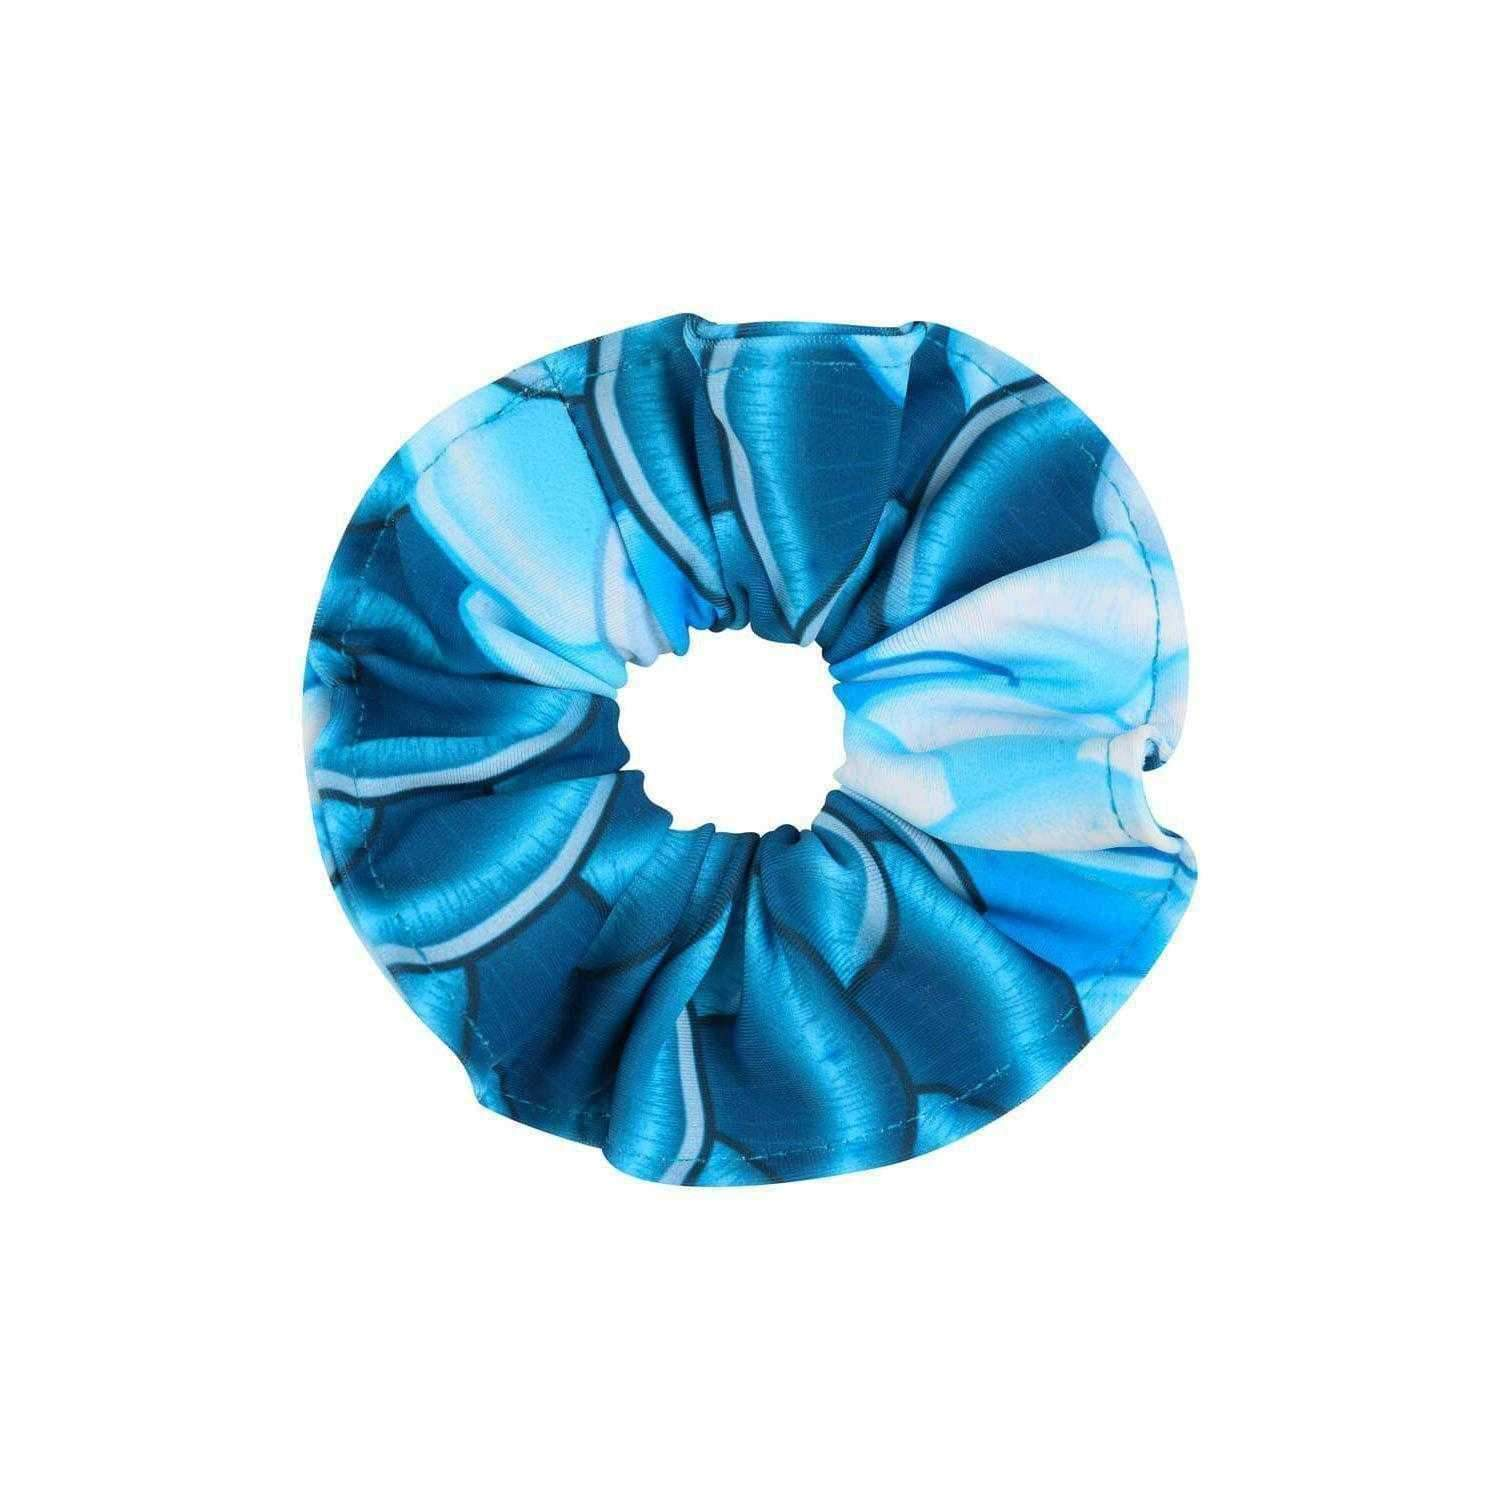 Kensington Bluebell Hair Scrunchie - Cola de sirenas, Reino Unido